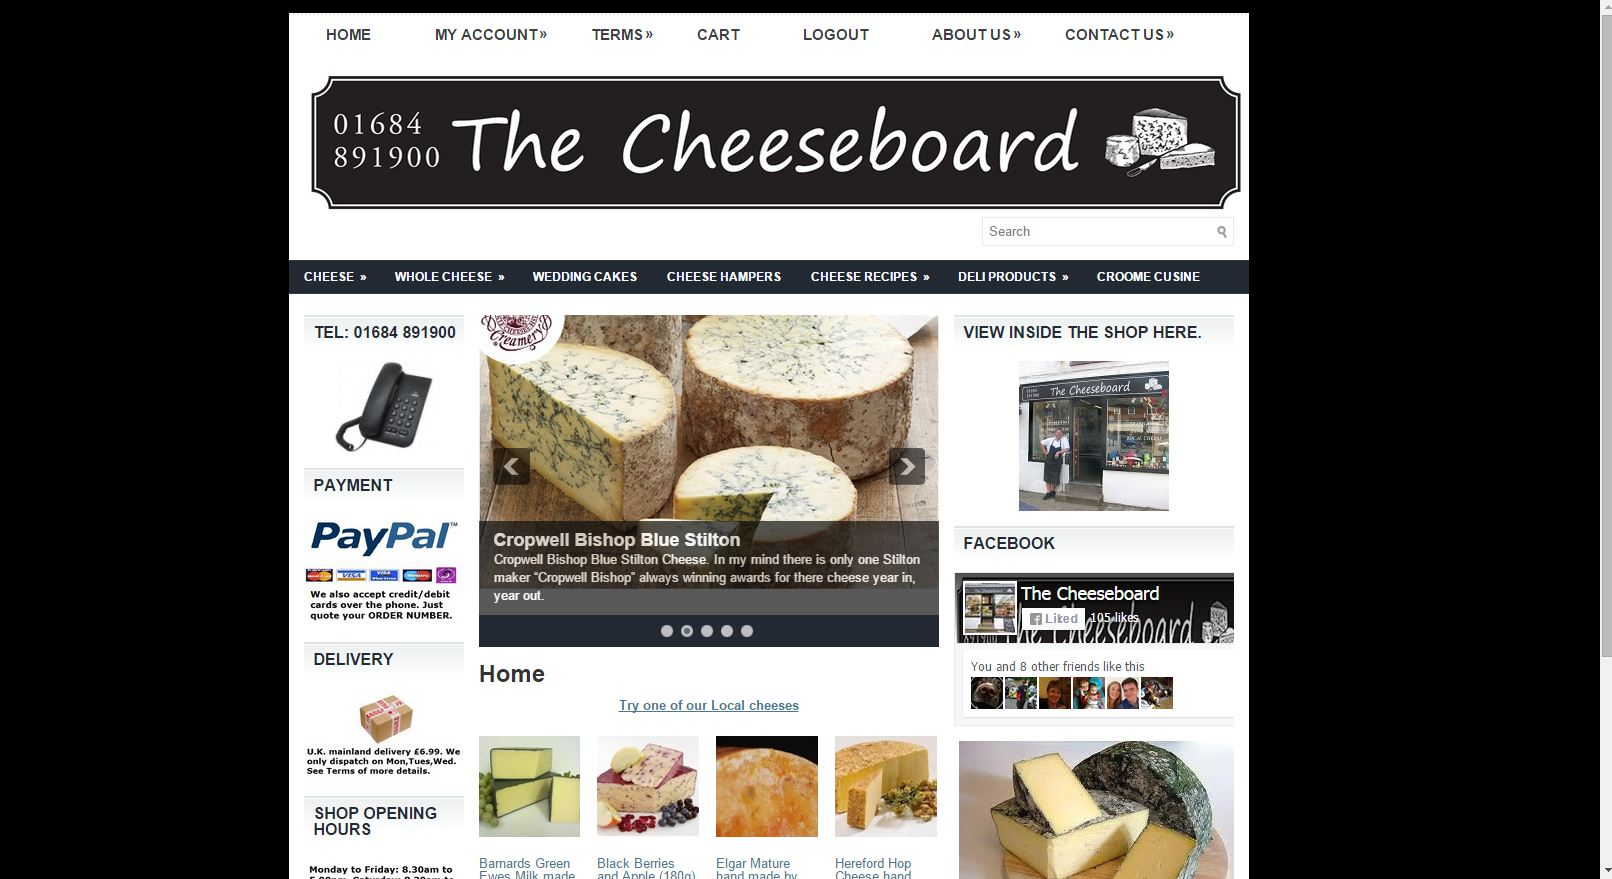 The Cheeseboard Malvern